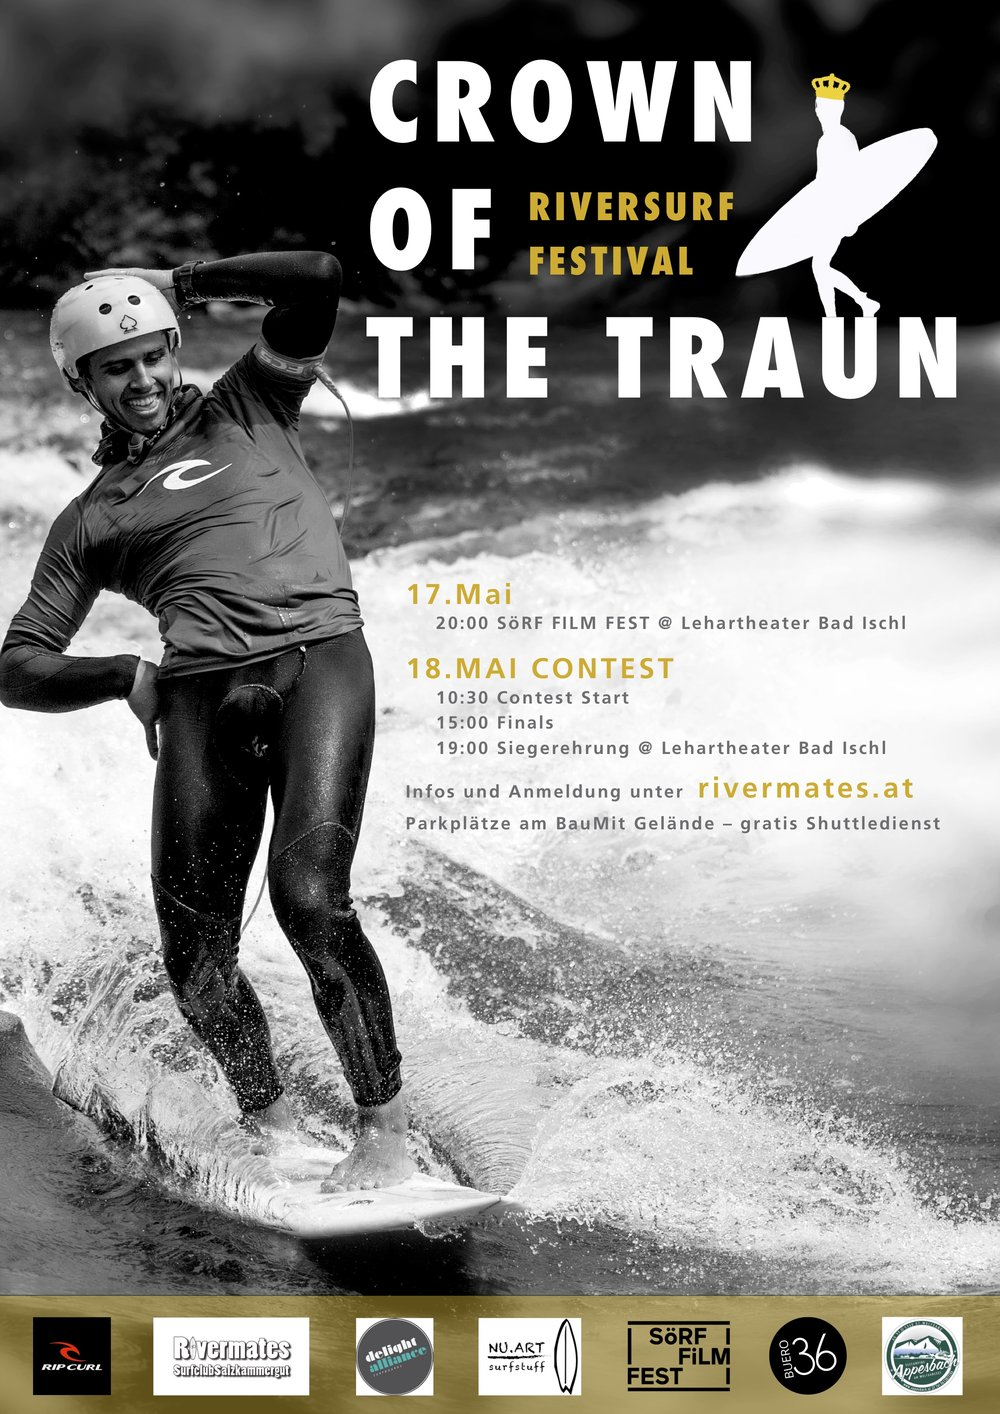 Crown of the Traun - May 18th 2019, Bad Ischl, AustriaRapid Surfing Roots Event; no tour pointsTogether with the Almkanal, the birthplace of Austrian rapid surfing, this event is a must on the calendar.